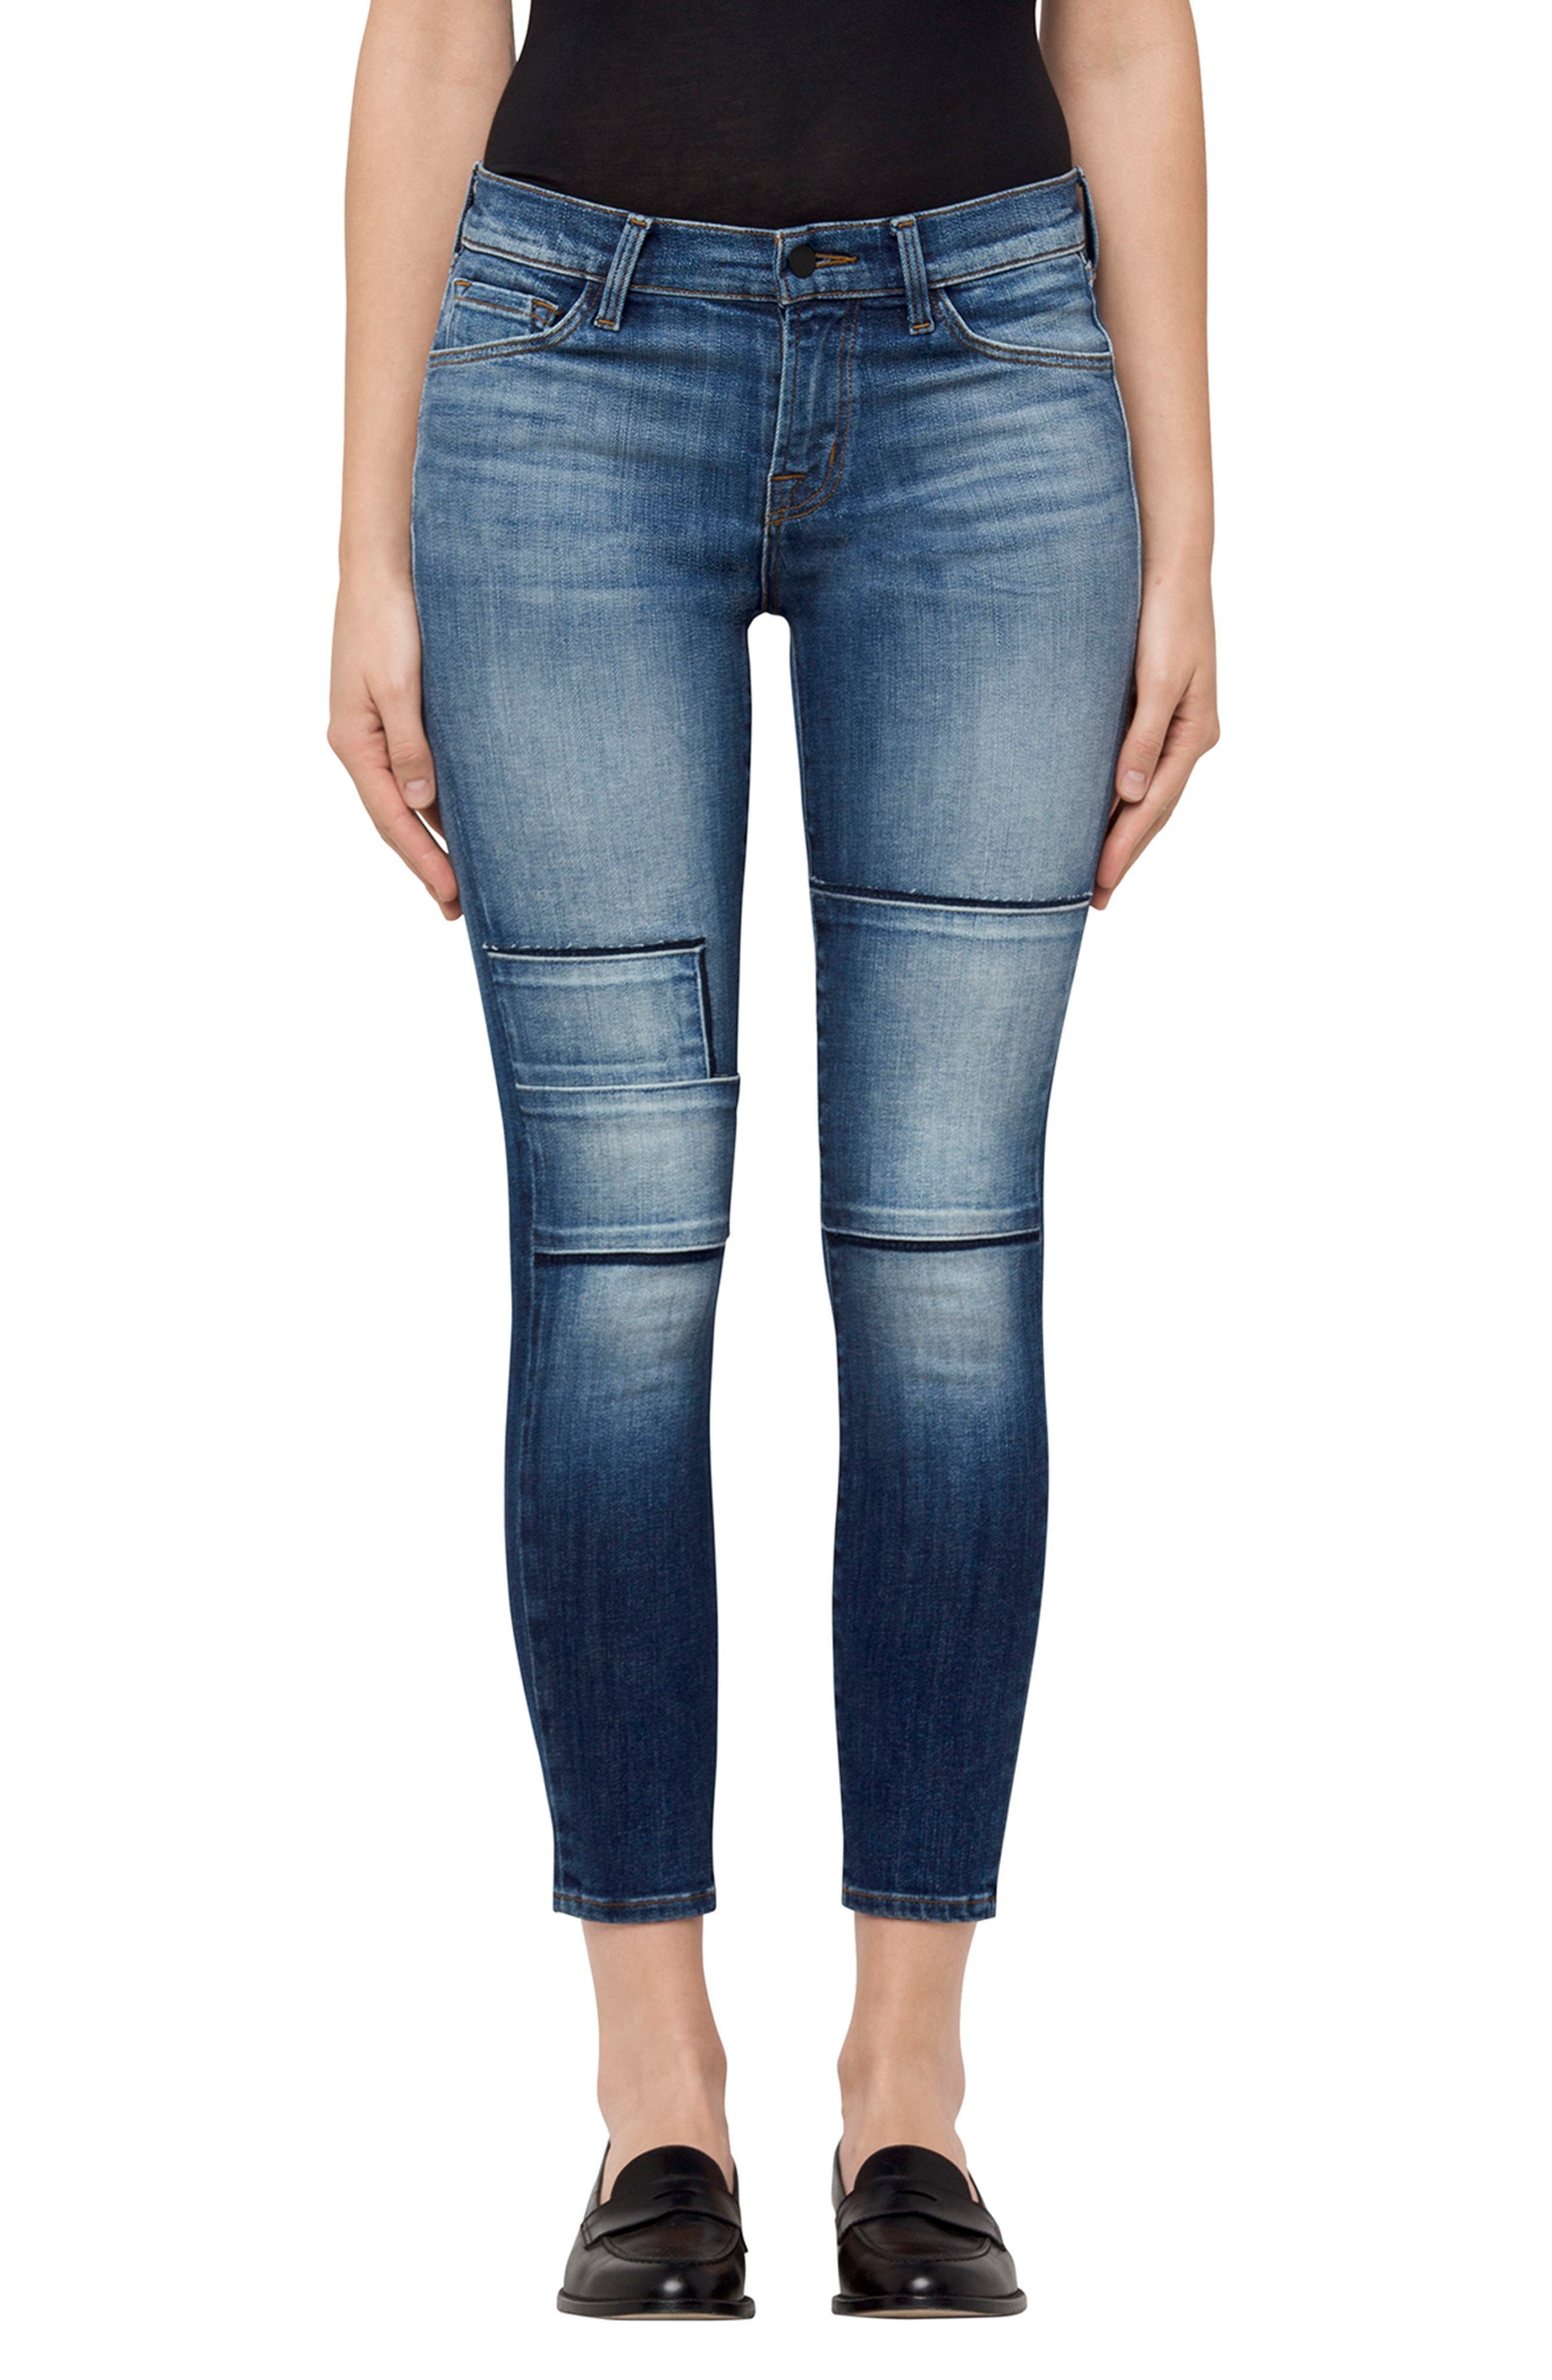 835 Crop Skinny Jeans,                             Main thumbnail 1, color,                             Jasper Patched